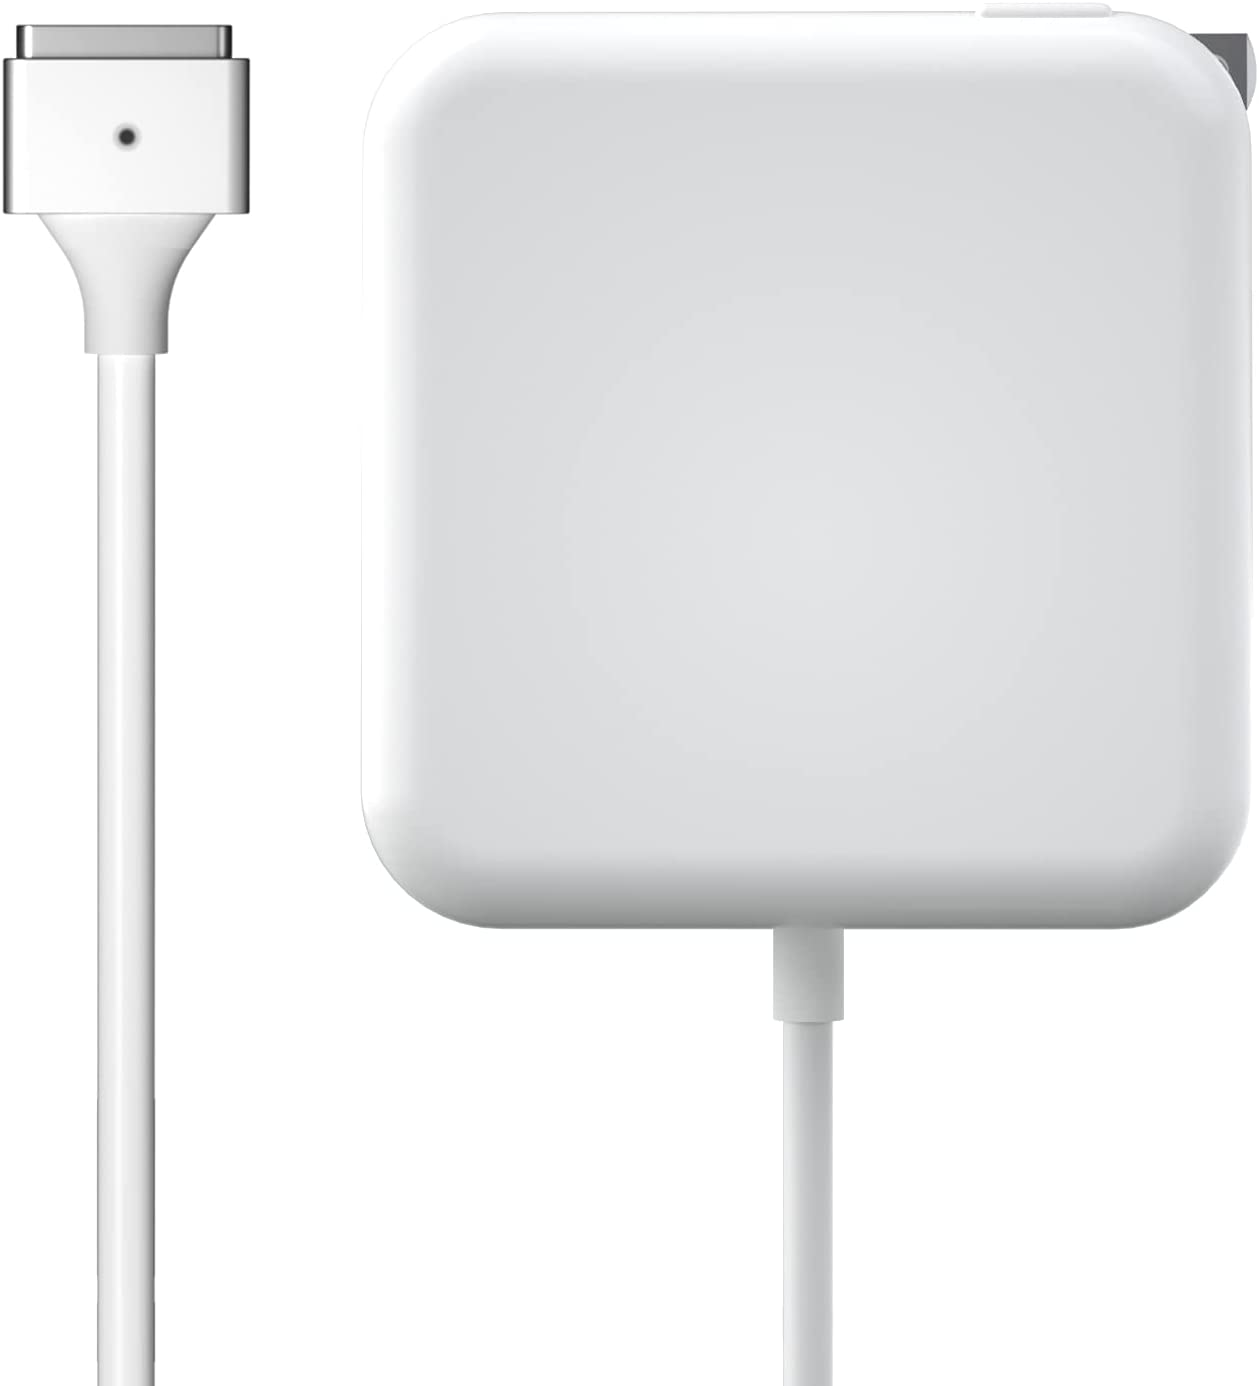 SZ96W Mac Book Air Charger, 45W Magnetic Mag2 T-Tip Laptop Charger for Mac Book Air 11 inch and 13 inch After Mid 2012(5.9ft/2m)